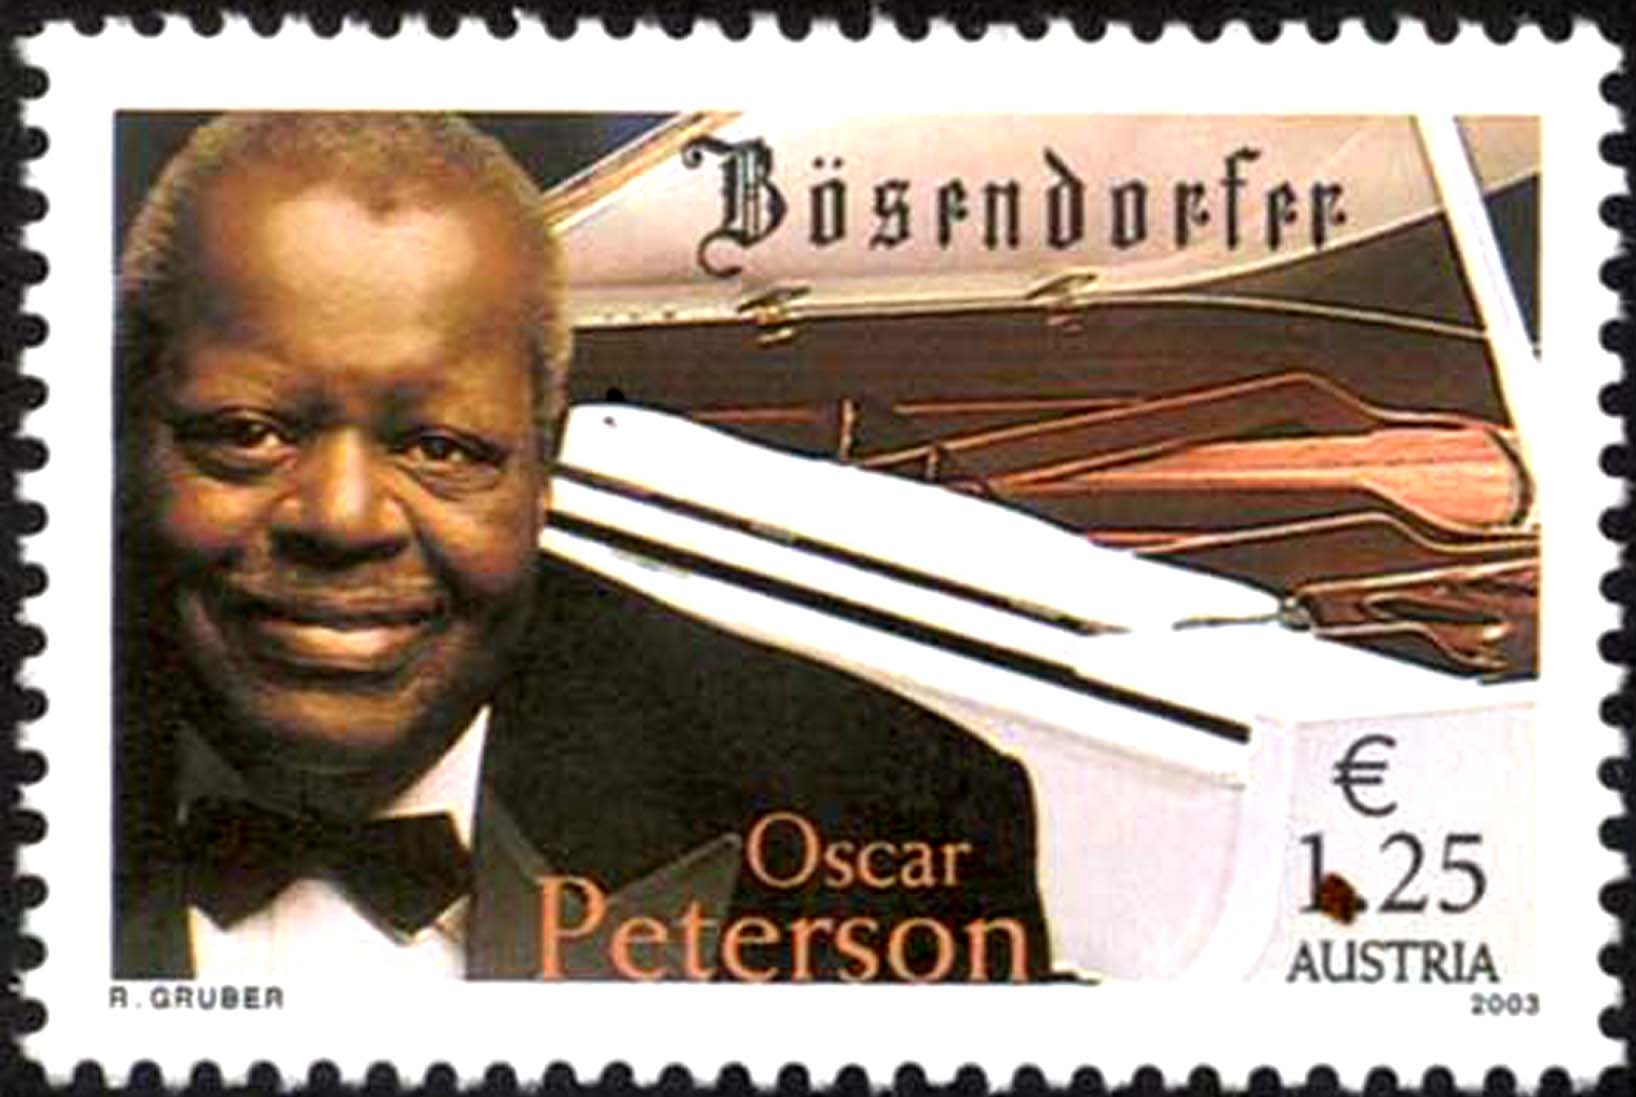 oscar peterson essay Oscar peterson: the jazz great oscar peterson was a man with a humble beginning which emerged and changed the world of jazz forever at a young age, he was introduced to music by his father.